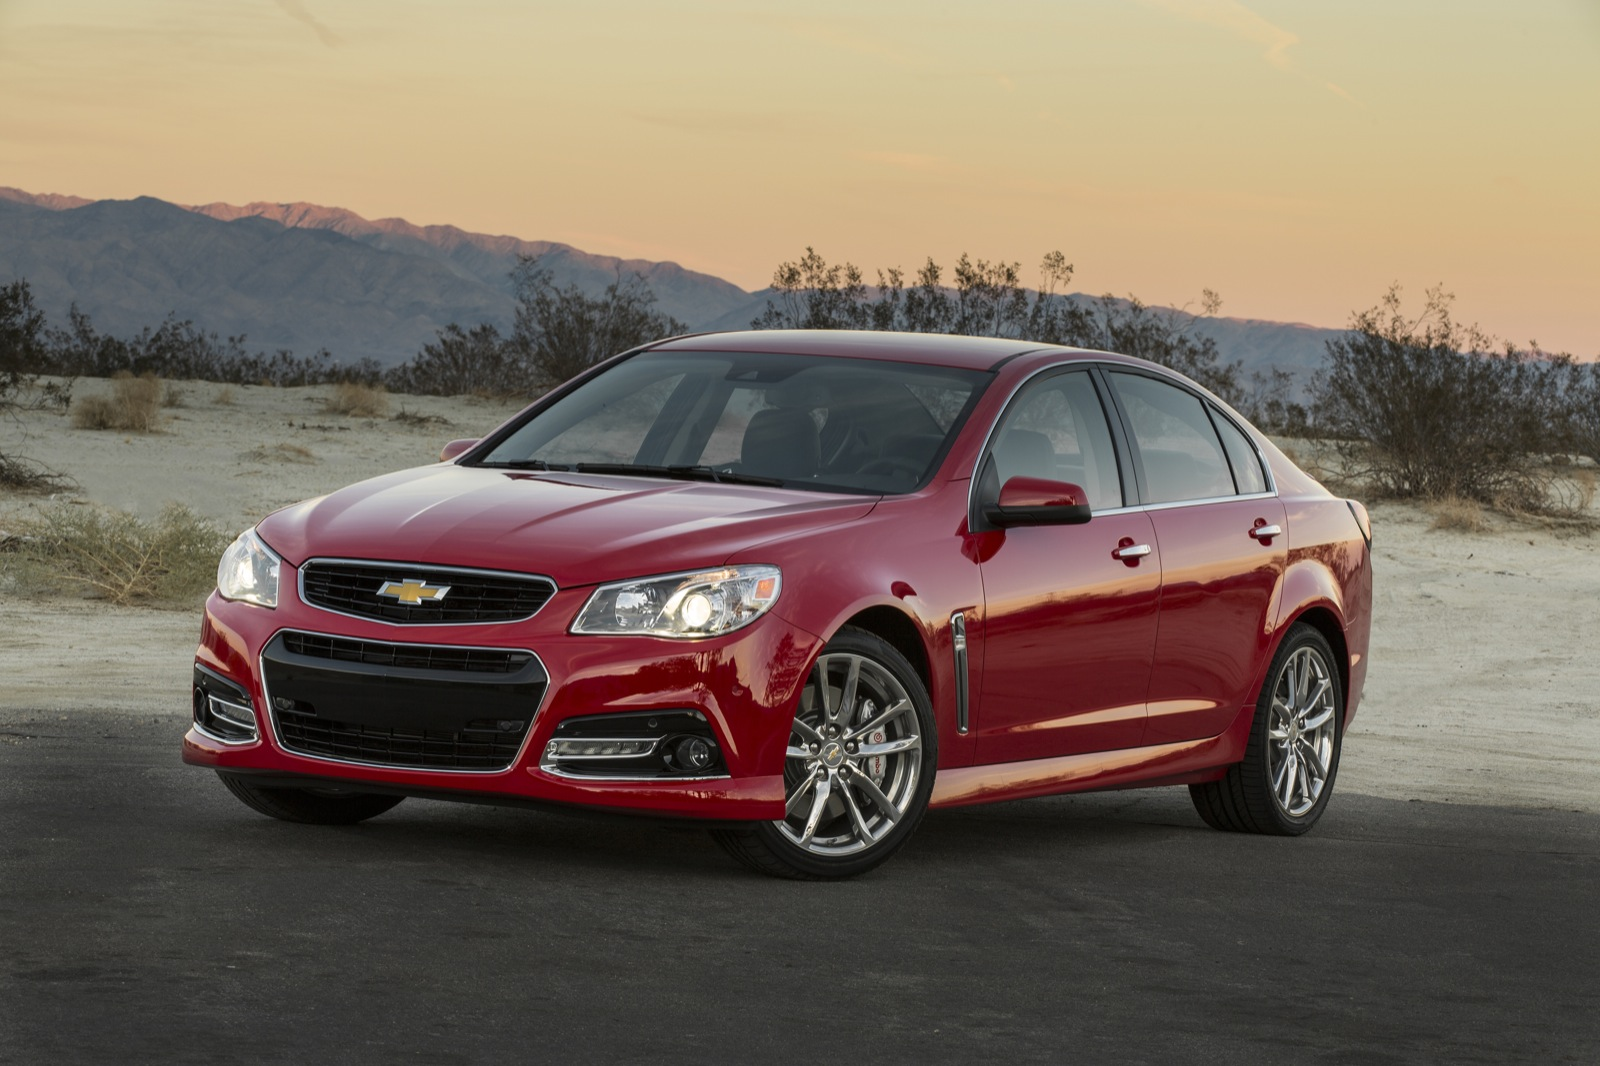 2015 Chevrolet Caprice Pictures including Interior and Exterior ...